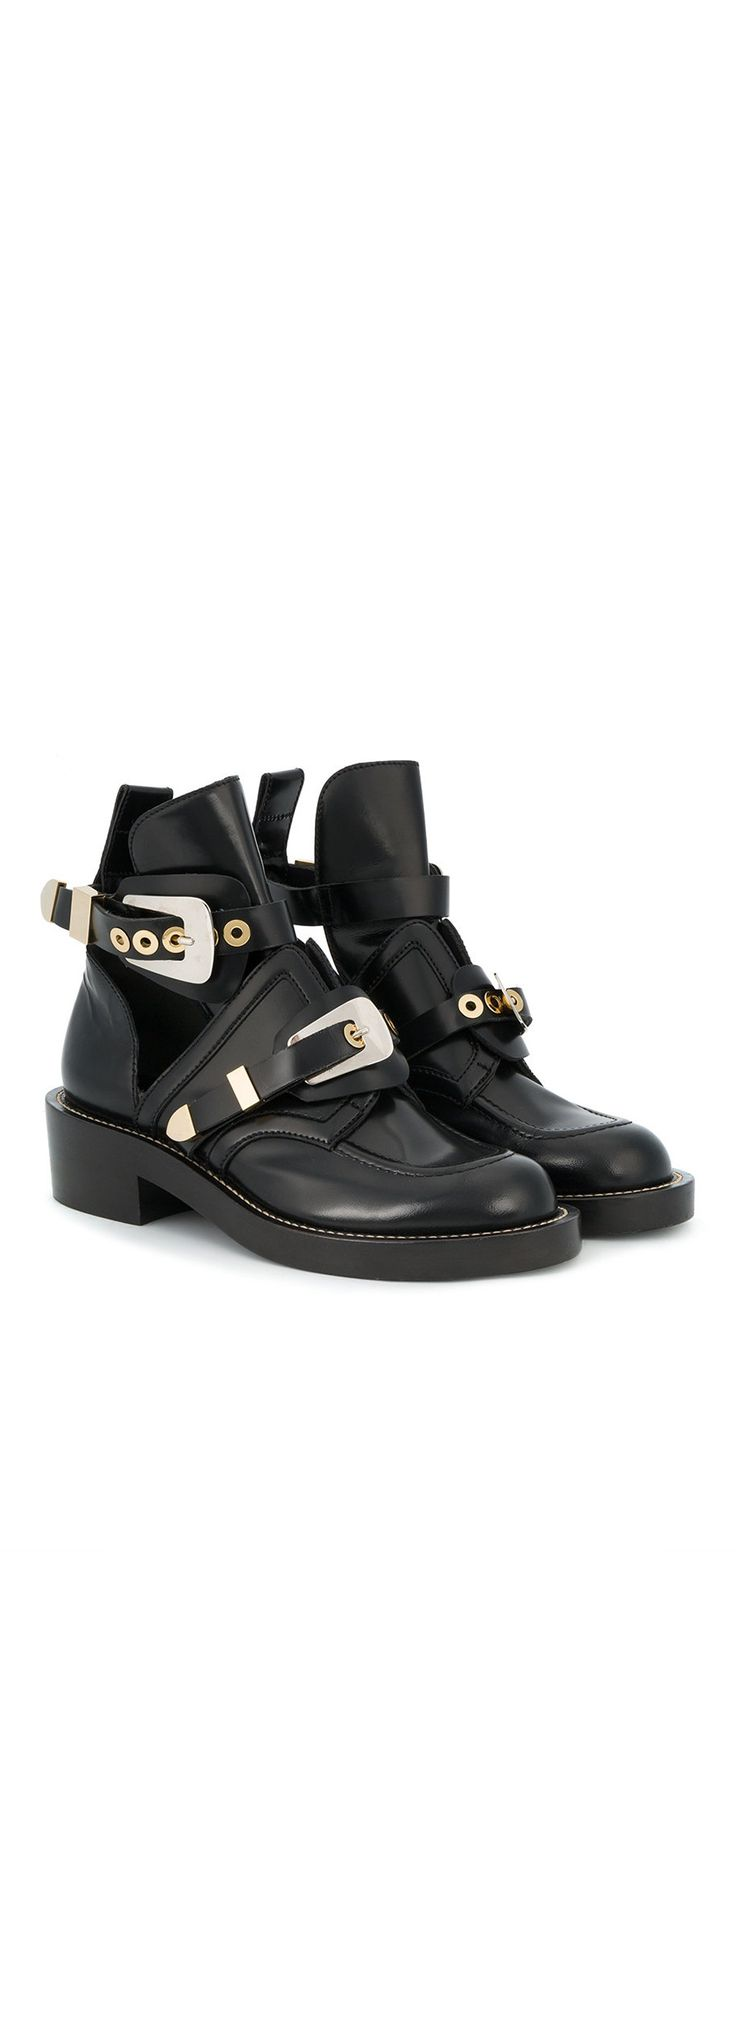 BALENCIAGA Ceinture ankle boots, explore new season Balenciaga on Farfetch now.